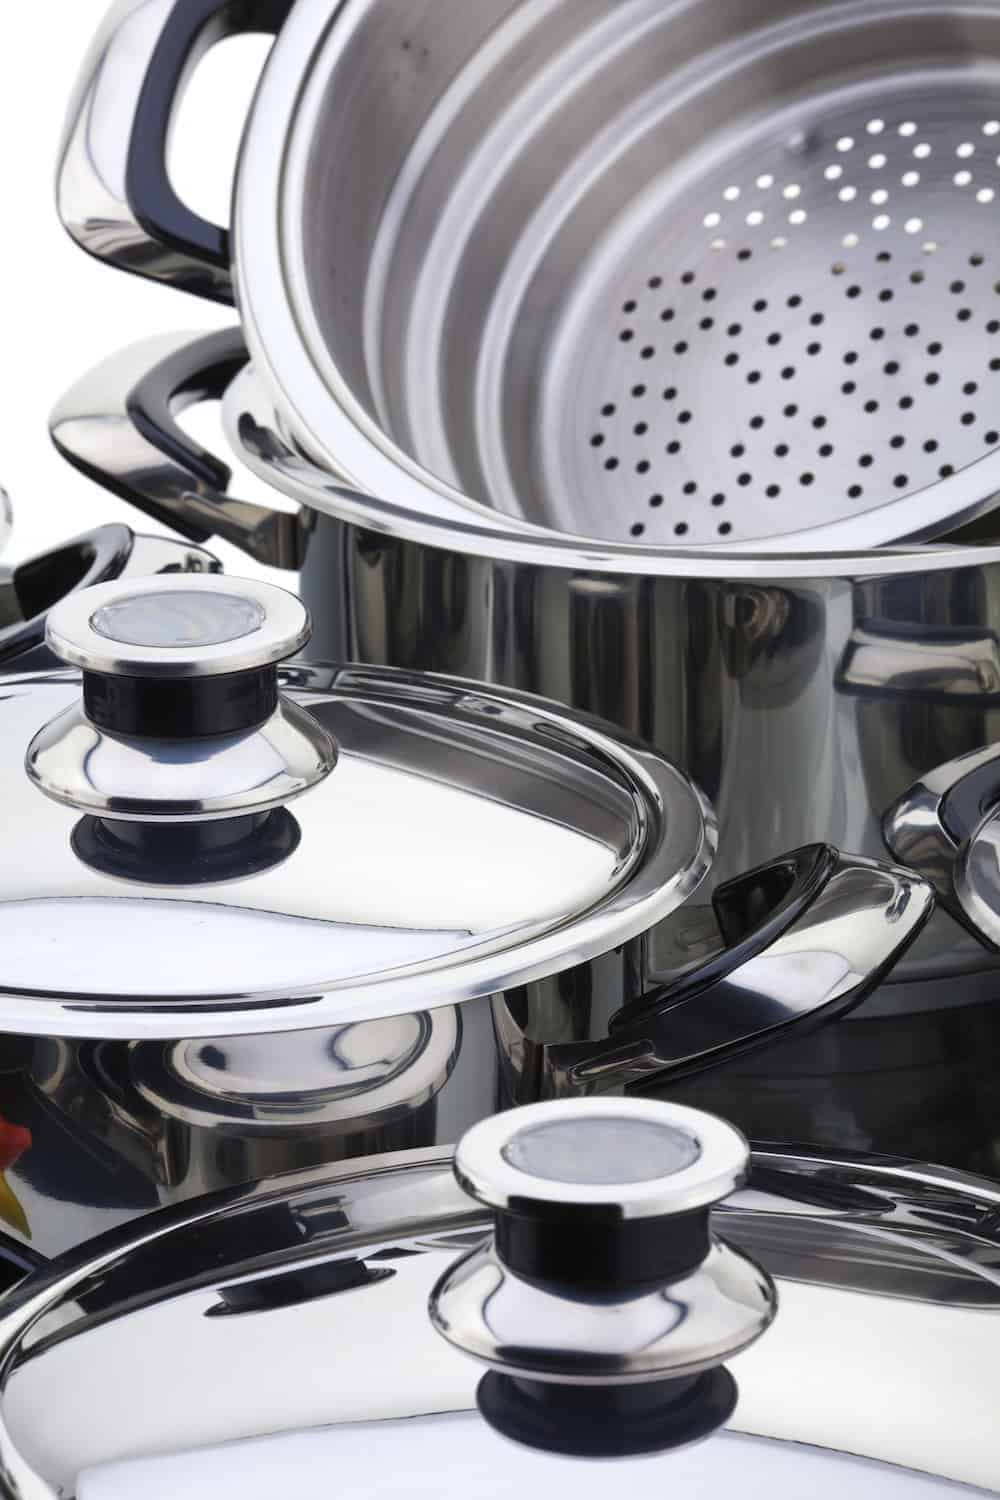 How to Take Care of Your High-Quality Pots and Pans - Consider Material Stainless Steel